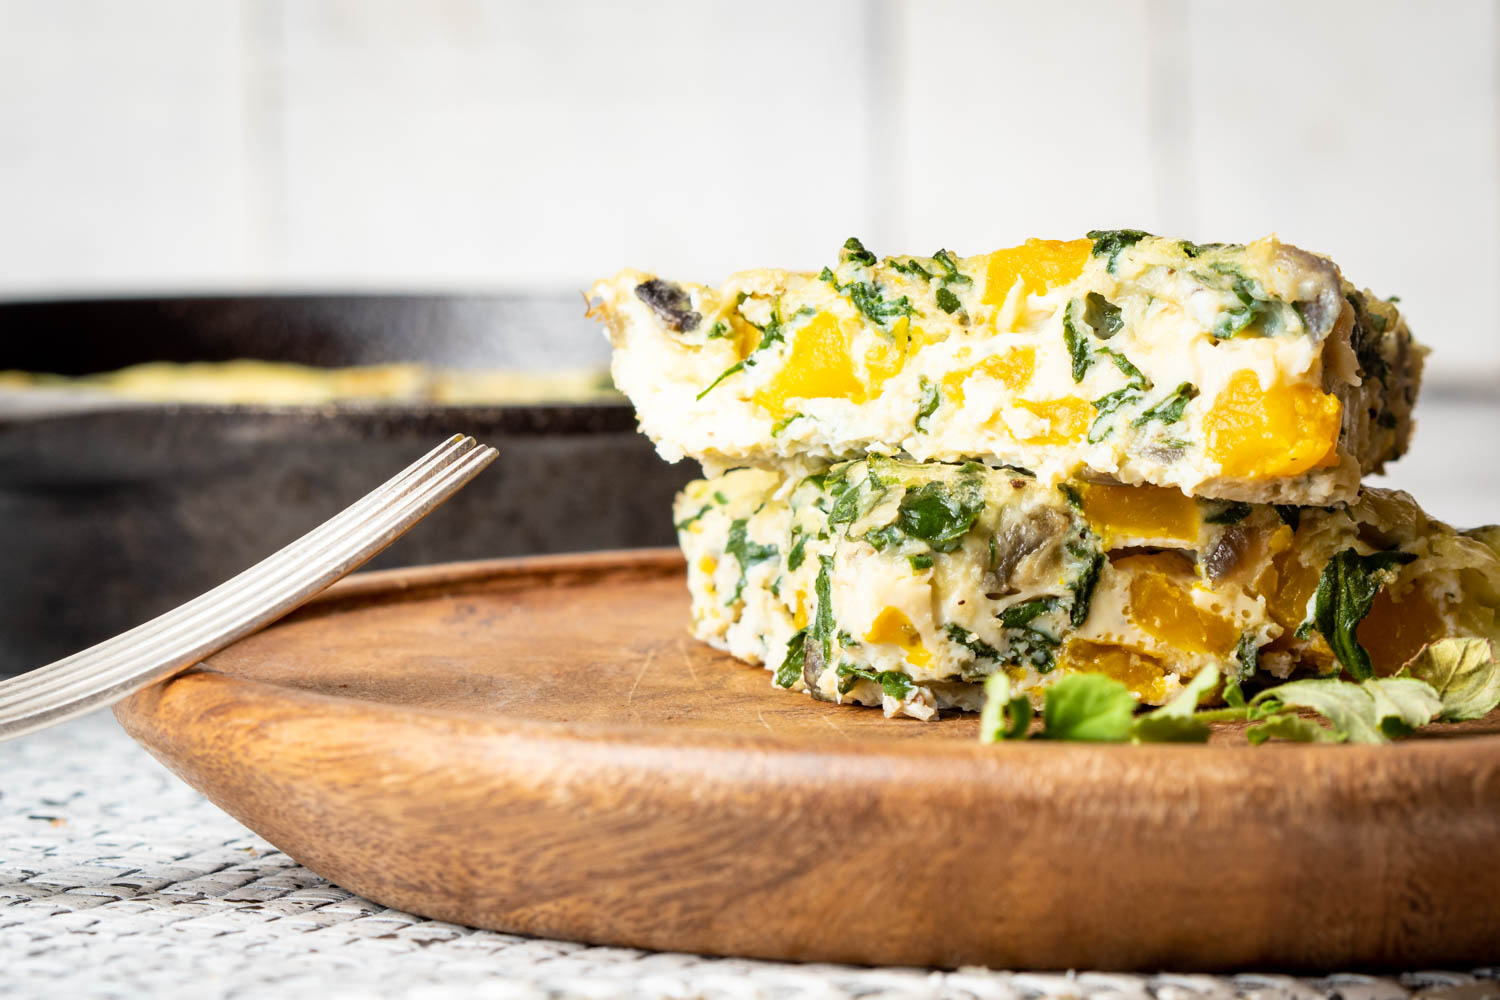 Side view of butternut squash and spinach egg casserole with blurred background.